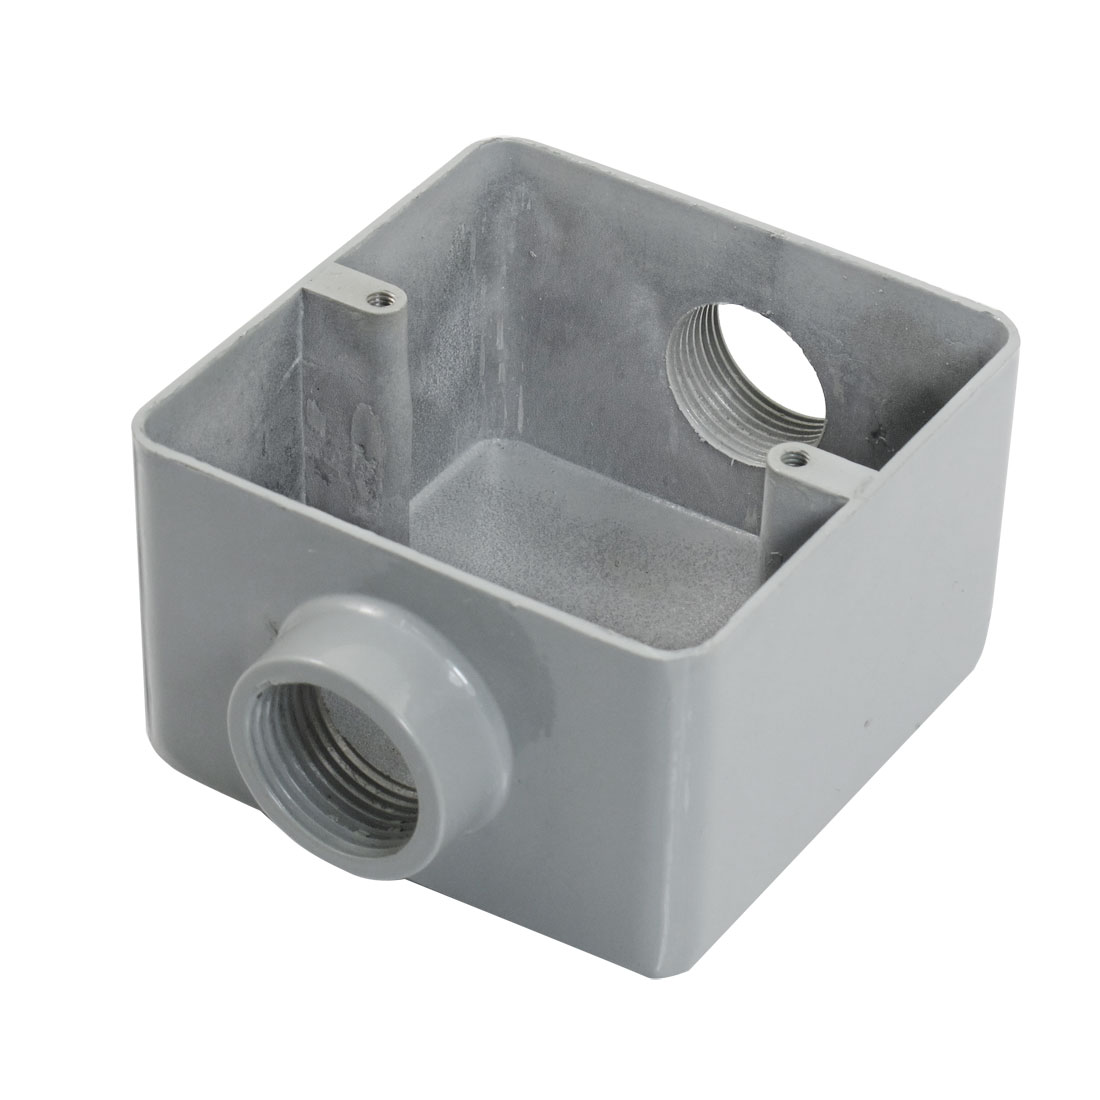 Household Metal Linear Double Hole Circuit Flush Mount Junction Box G3/4""